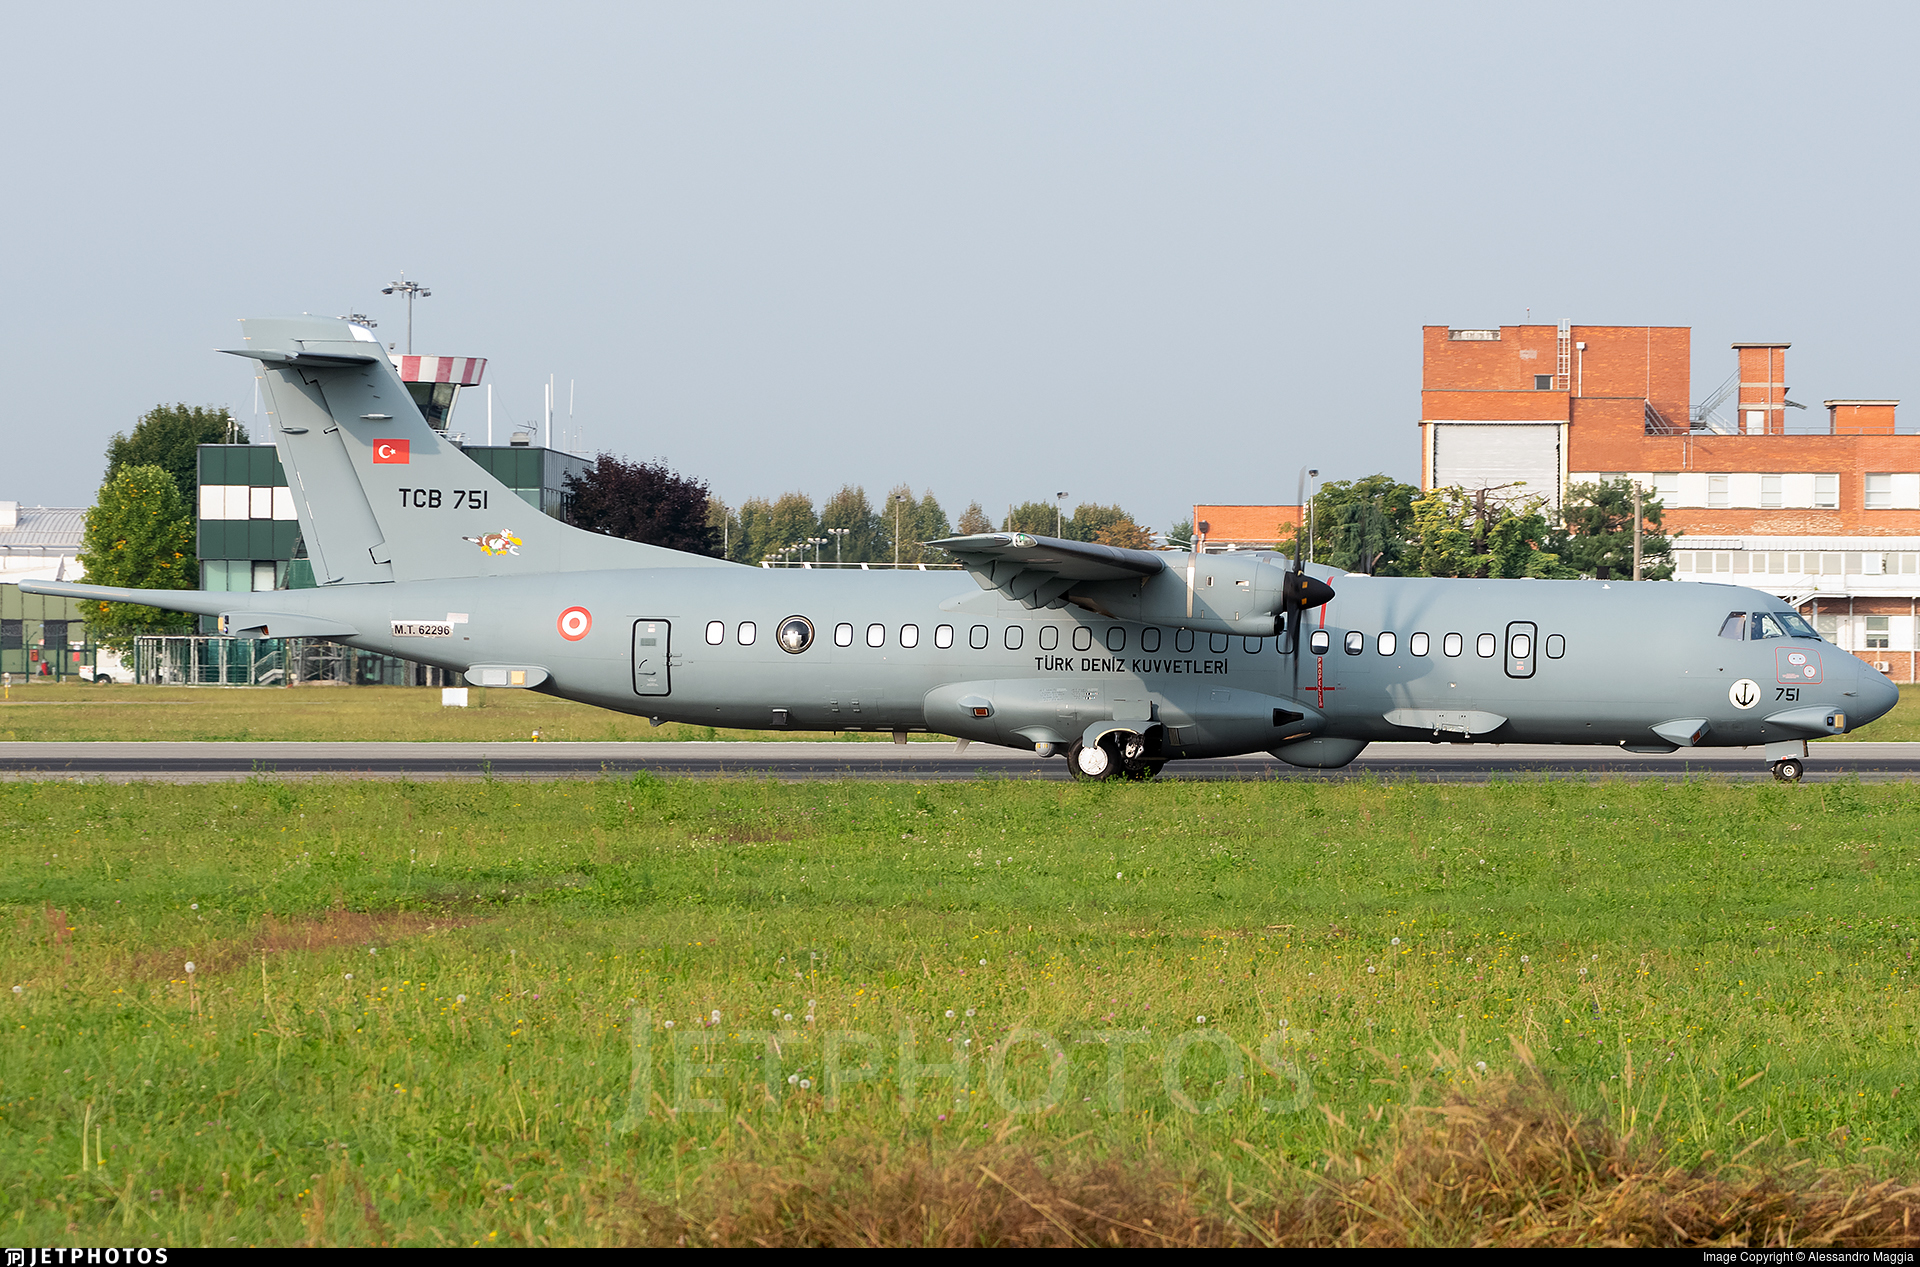 MT62296 - ATR 72 ASW - Turkey - Navy